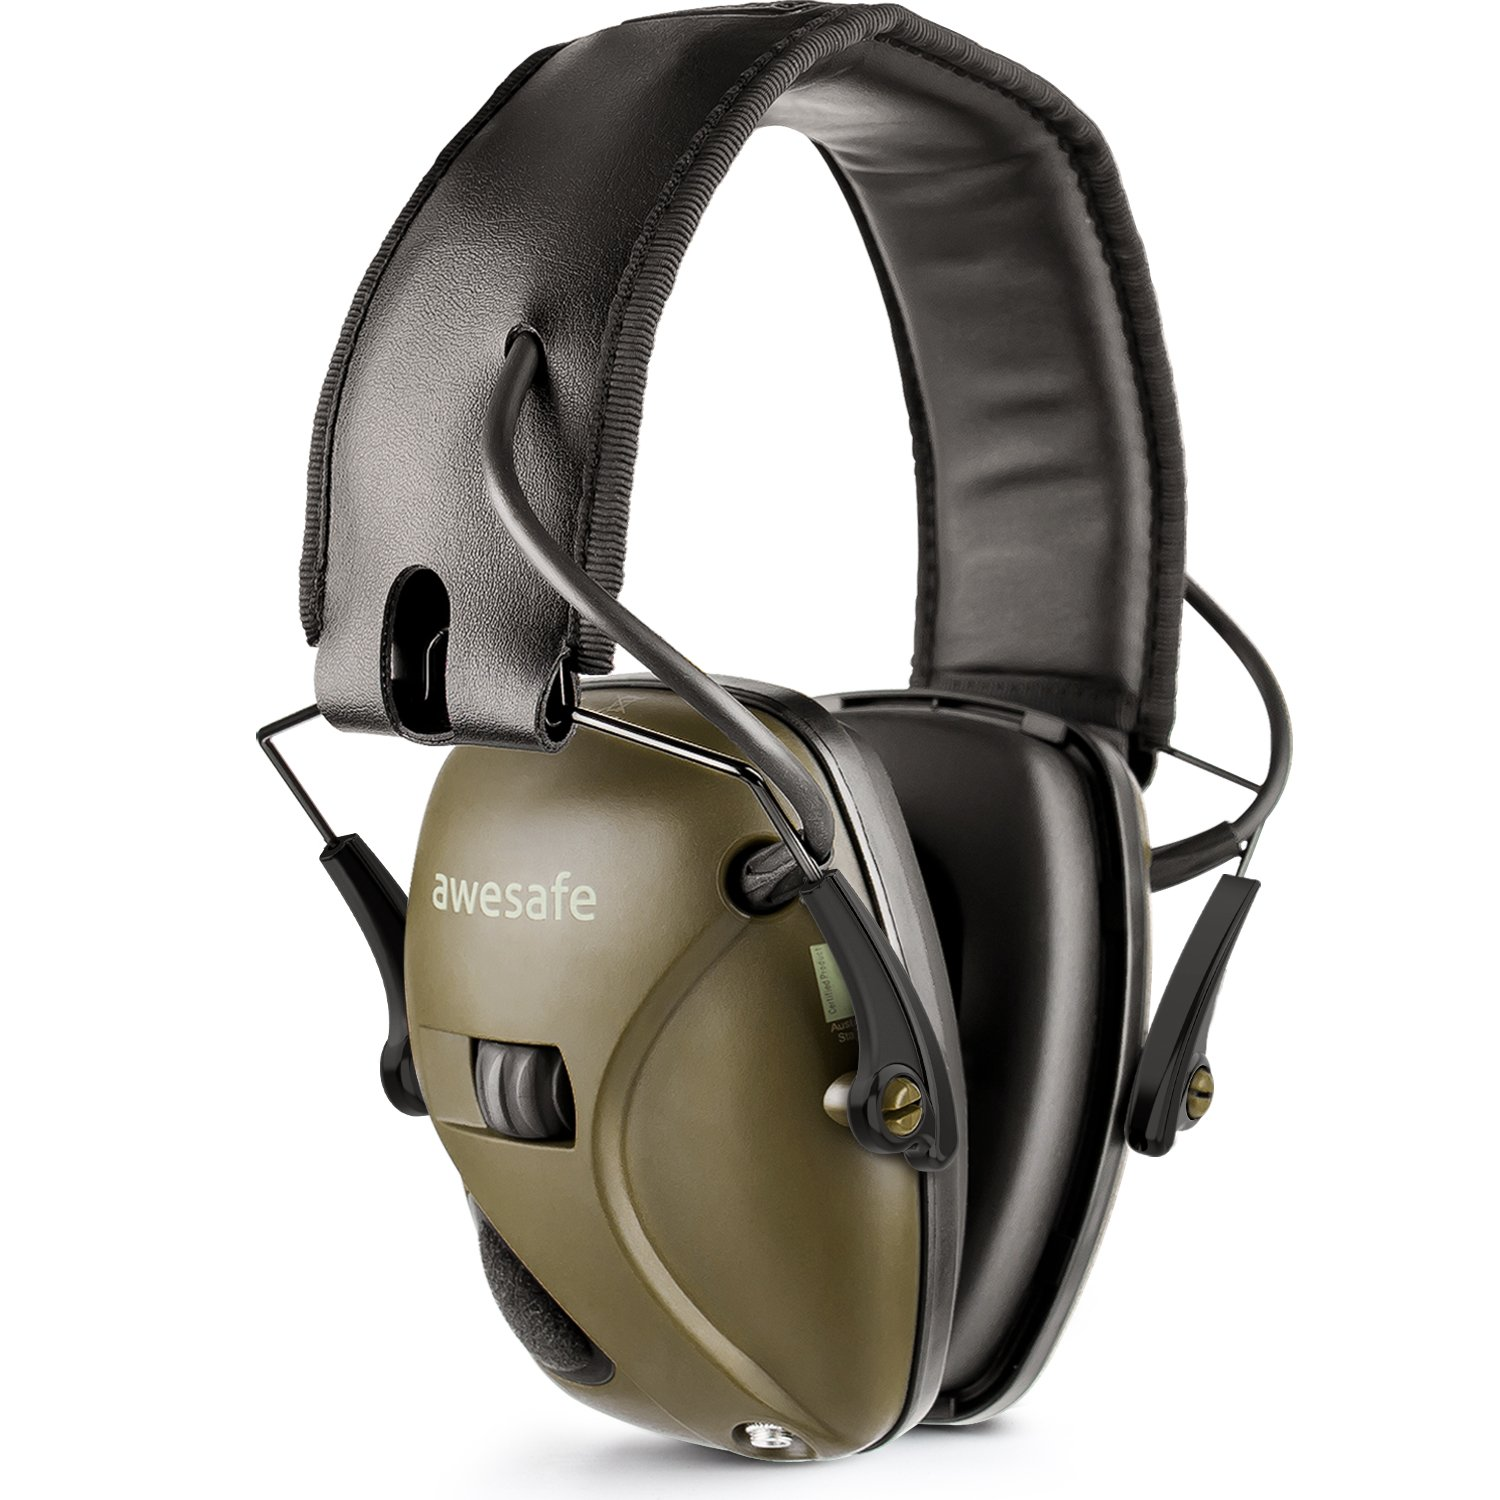 New Electronic Shooting Earmuff, Awesafe GF01 Noise Reduction Sound Amplification Electronic Safety Ear Muffs, Ear Protection, NRR 22 dB, Ideal for Shooting and Hunting